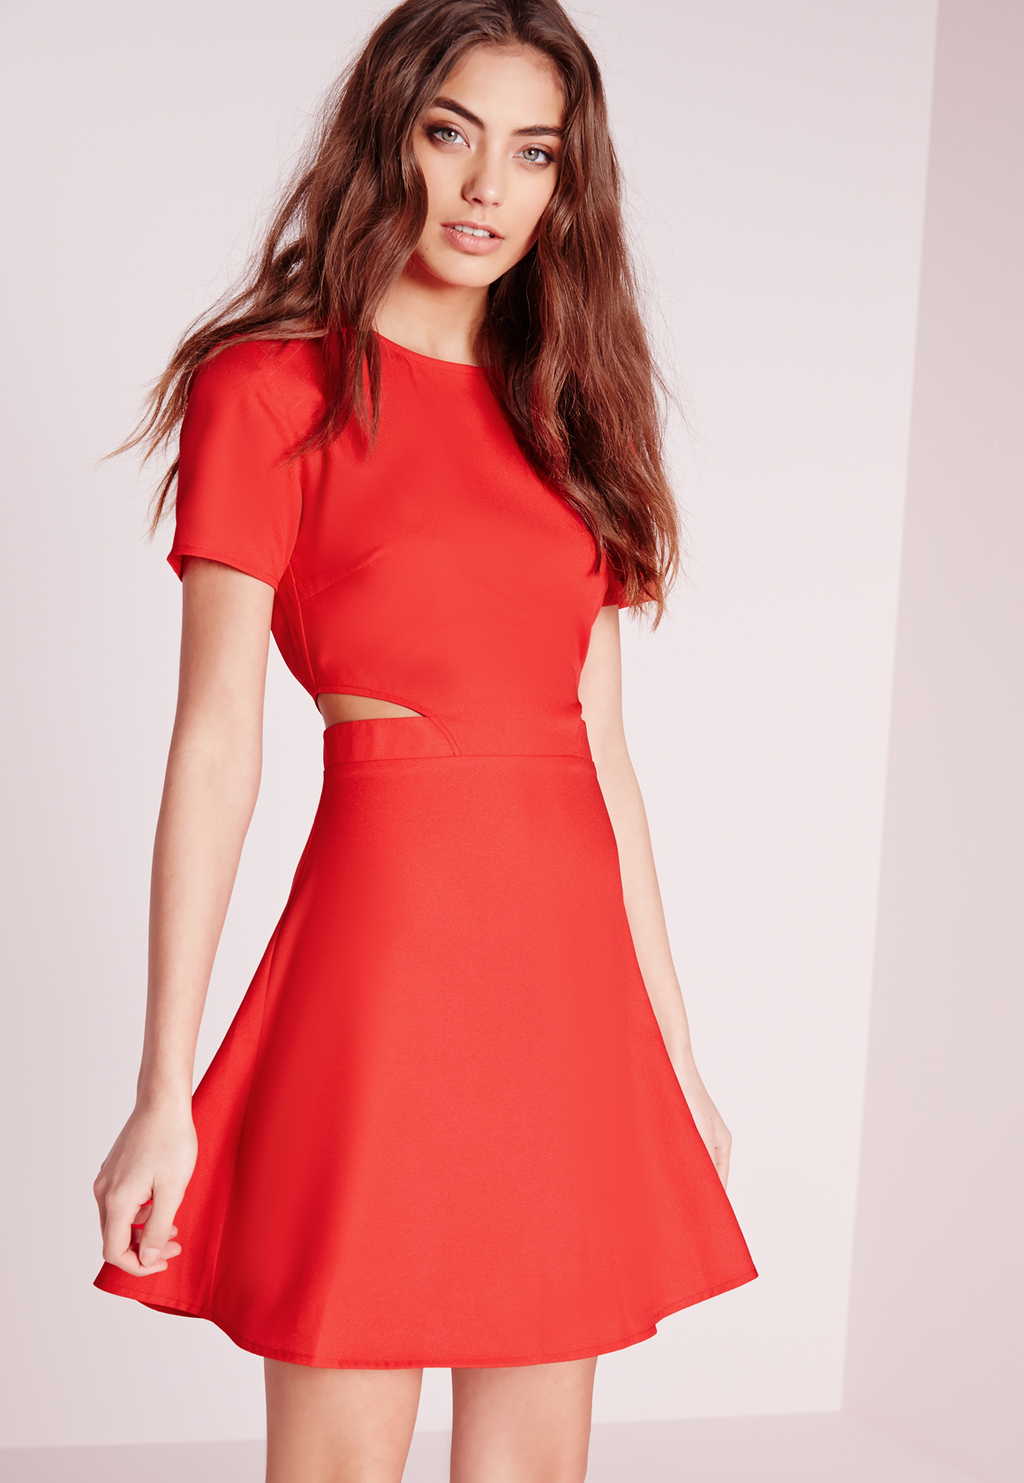 Short Sleeve Crepe Cut Out Waist Skater Dress Red, Red - length: mid thigh; pattern: plain; predominant colour: coral; occasions: evening; fit: fitted at waist & bust; style: fit & flare; fibres: viscose/rayon - stretch; neckline: crew; waist detail: cut out detail; sleeve length: short sleeve; sleeve style: standard; texture group: crepes; pattern type: fabric; season: s/s 2016; wardrobe: event